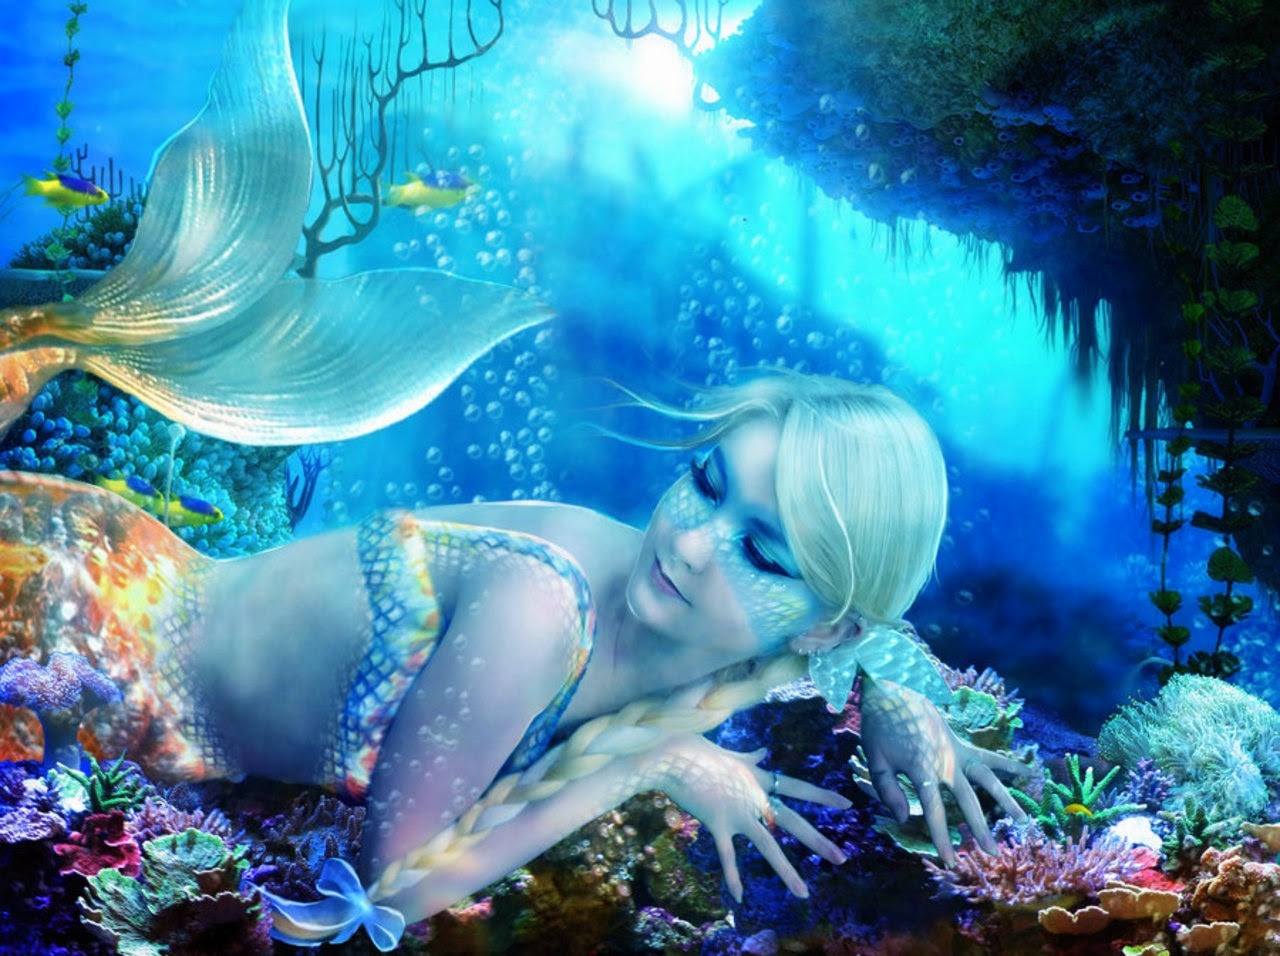 Real life mermaid girls photography with Photoshop ...